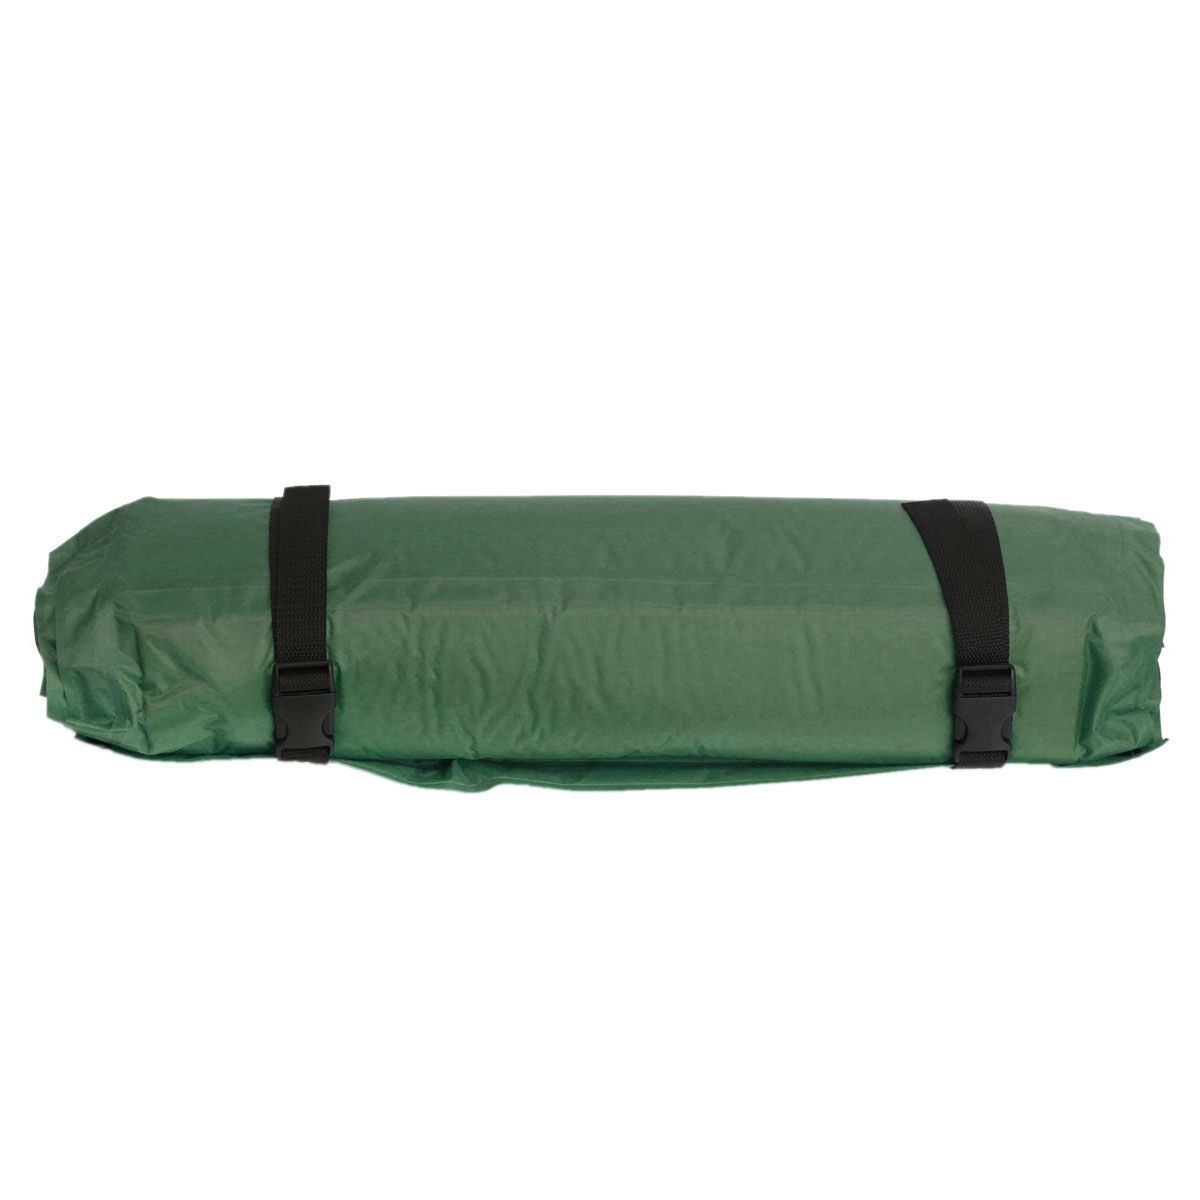 Outdoor Camping Folding Self Inflating Air Cushion Beach Mat Mattress Pad Pillow Hiking Damp Proof Sleeping Bed Mattress Pad Sleeping In Bed Inflatable Pillow